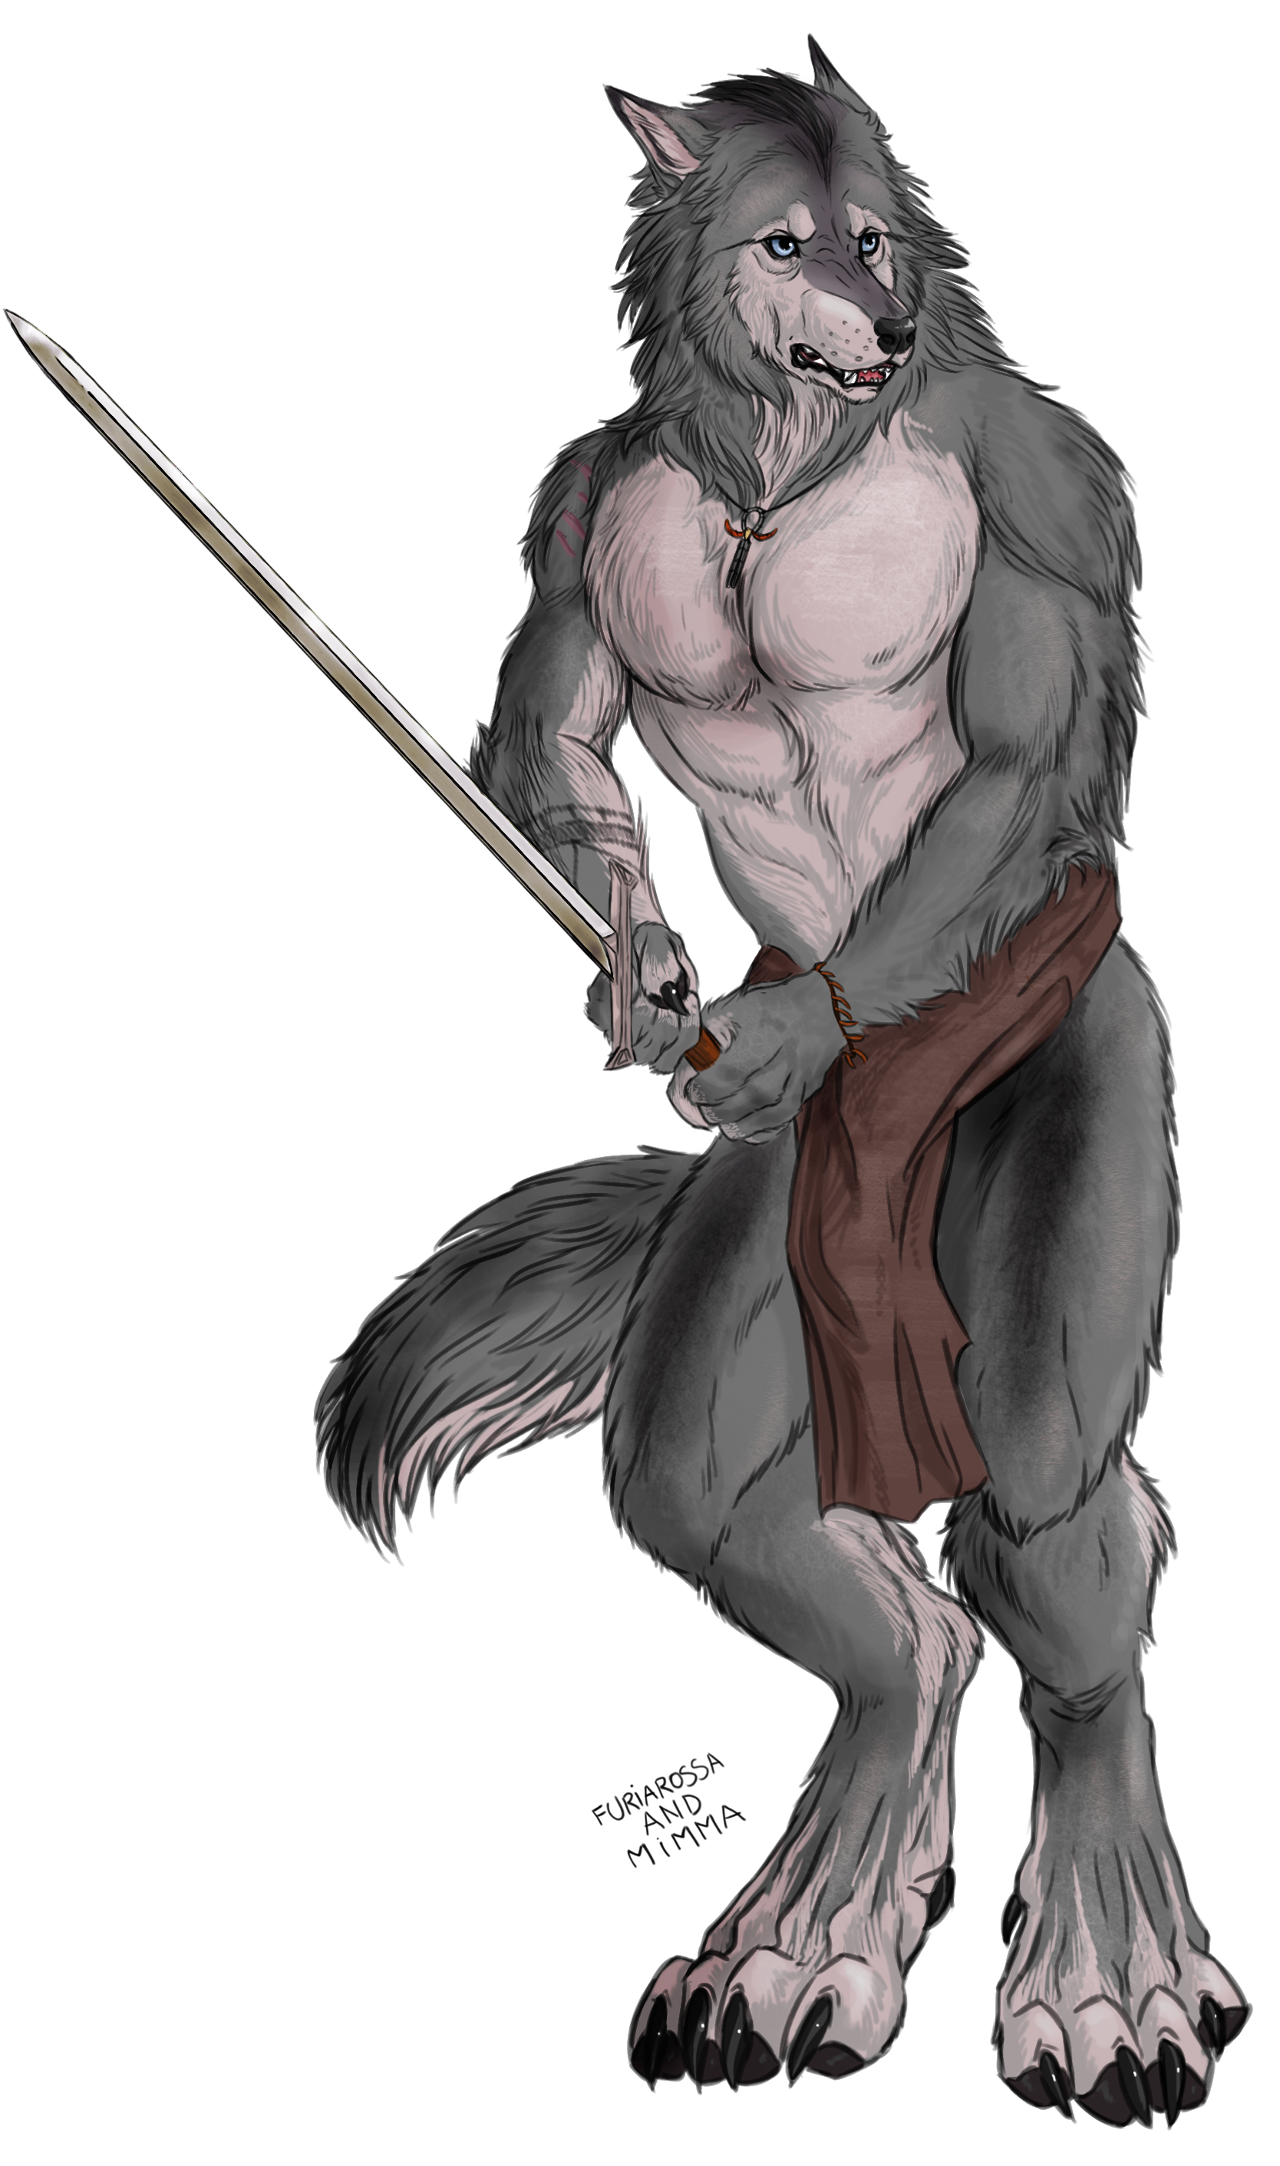 Executioner drawing. Commission transparent werewolf with